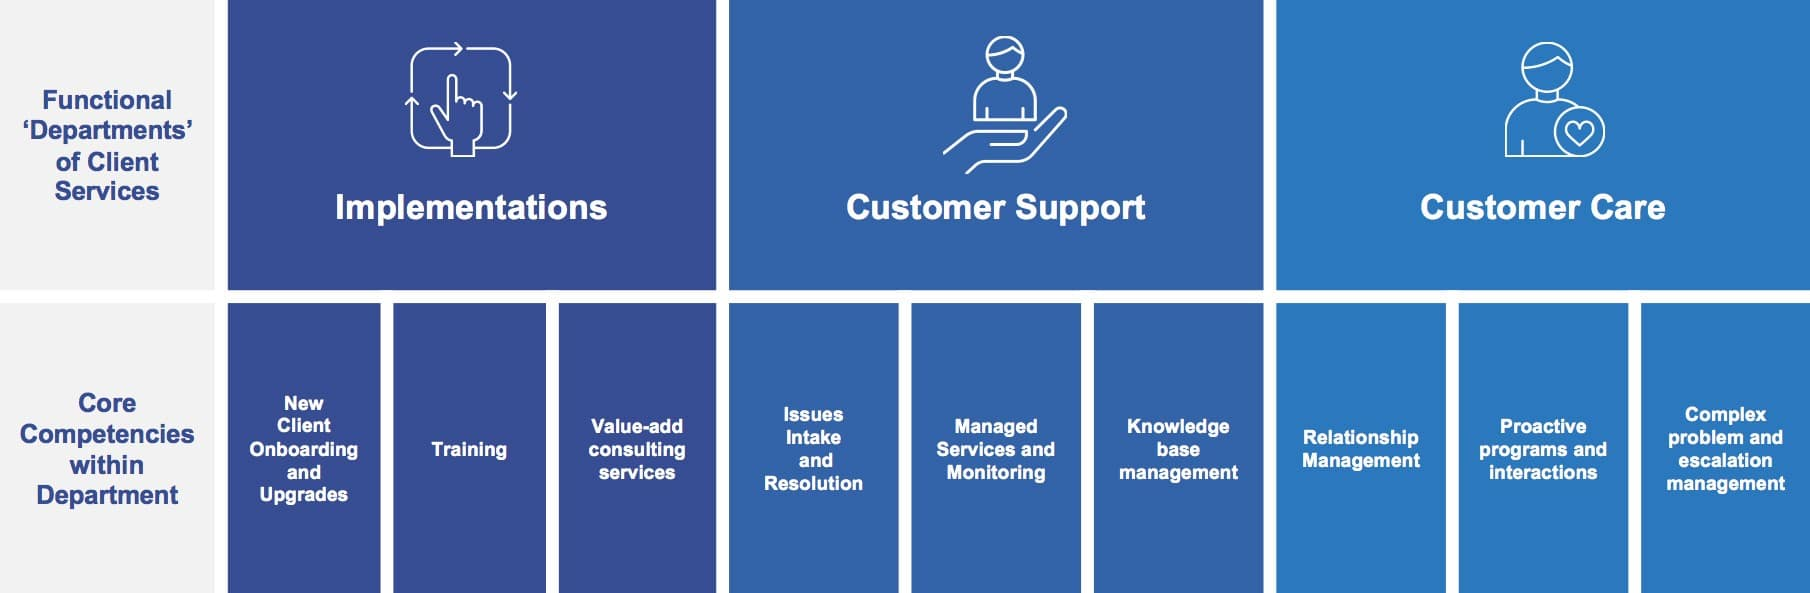 Client Services Organization – How We Deliver to our Customers